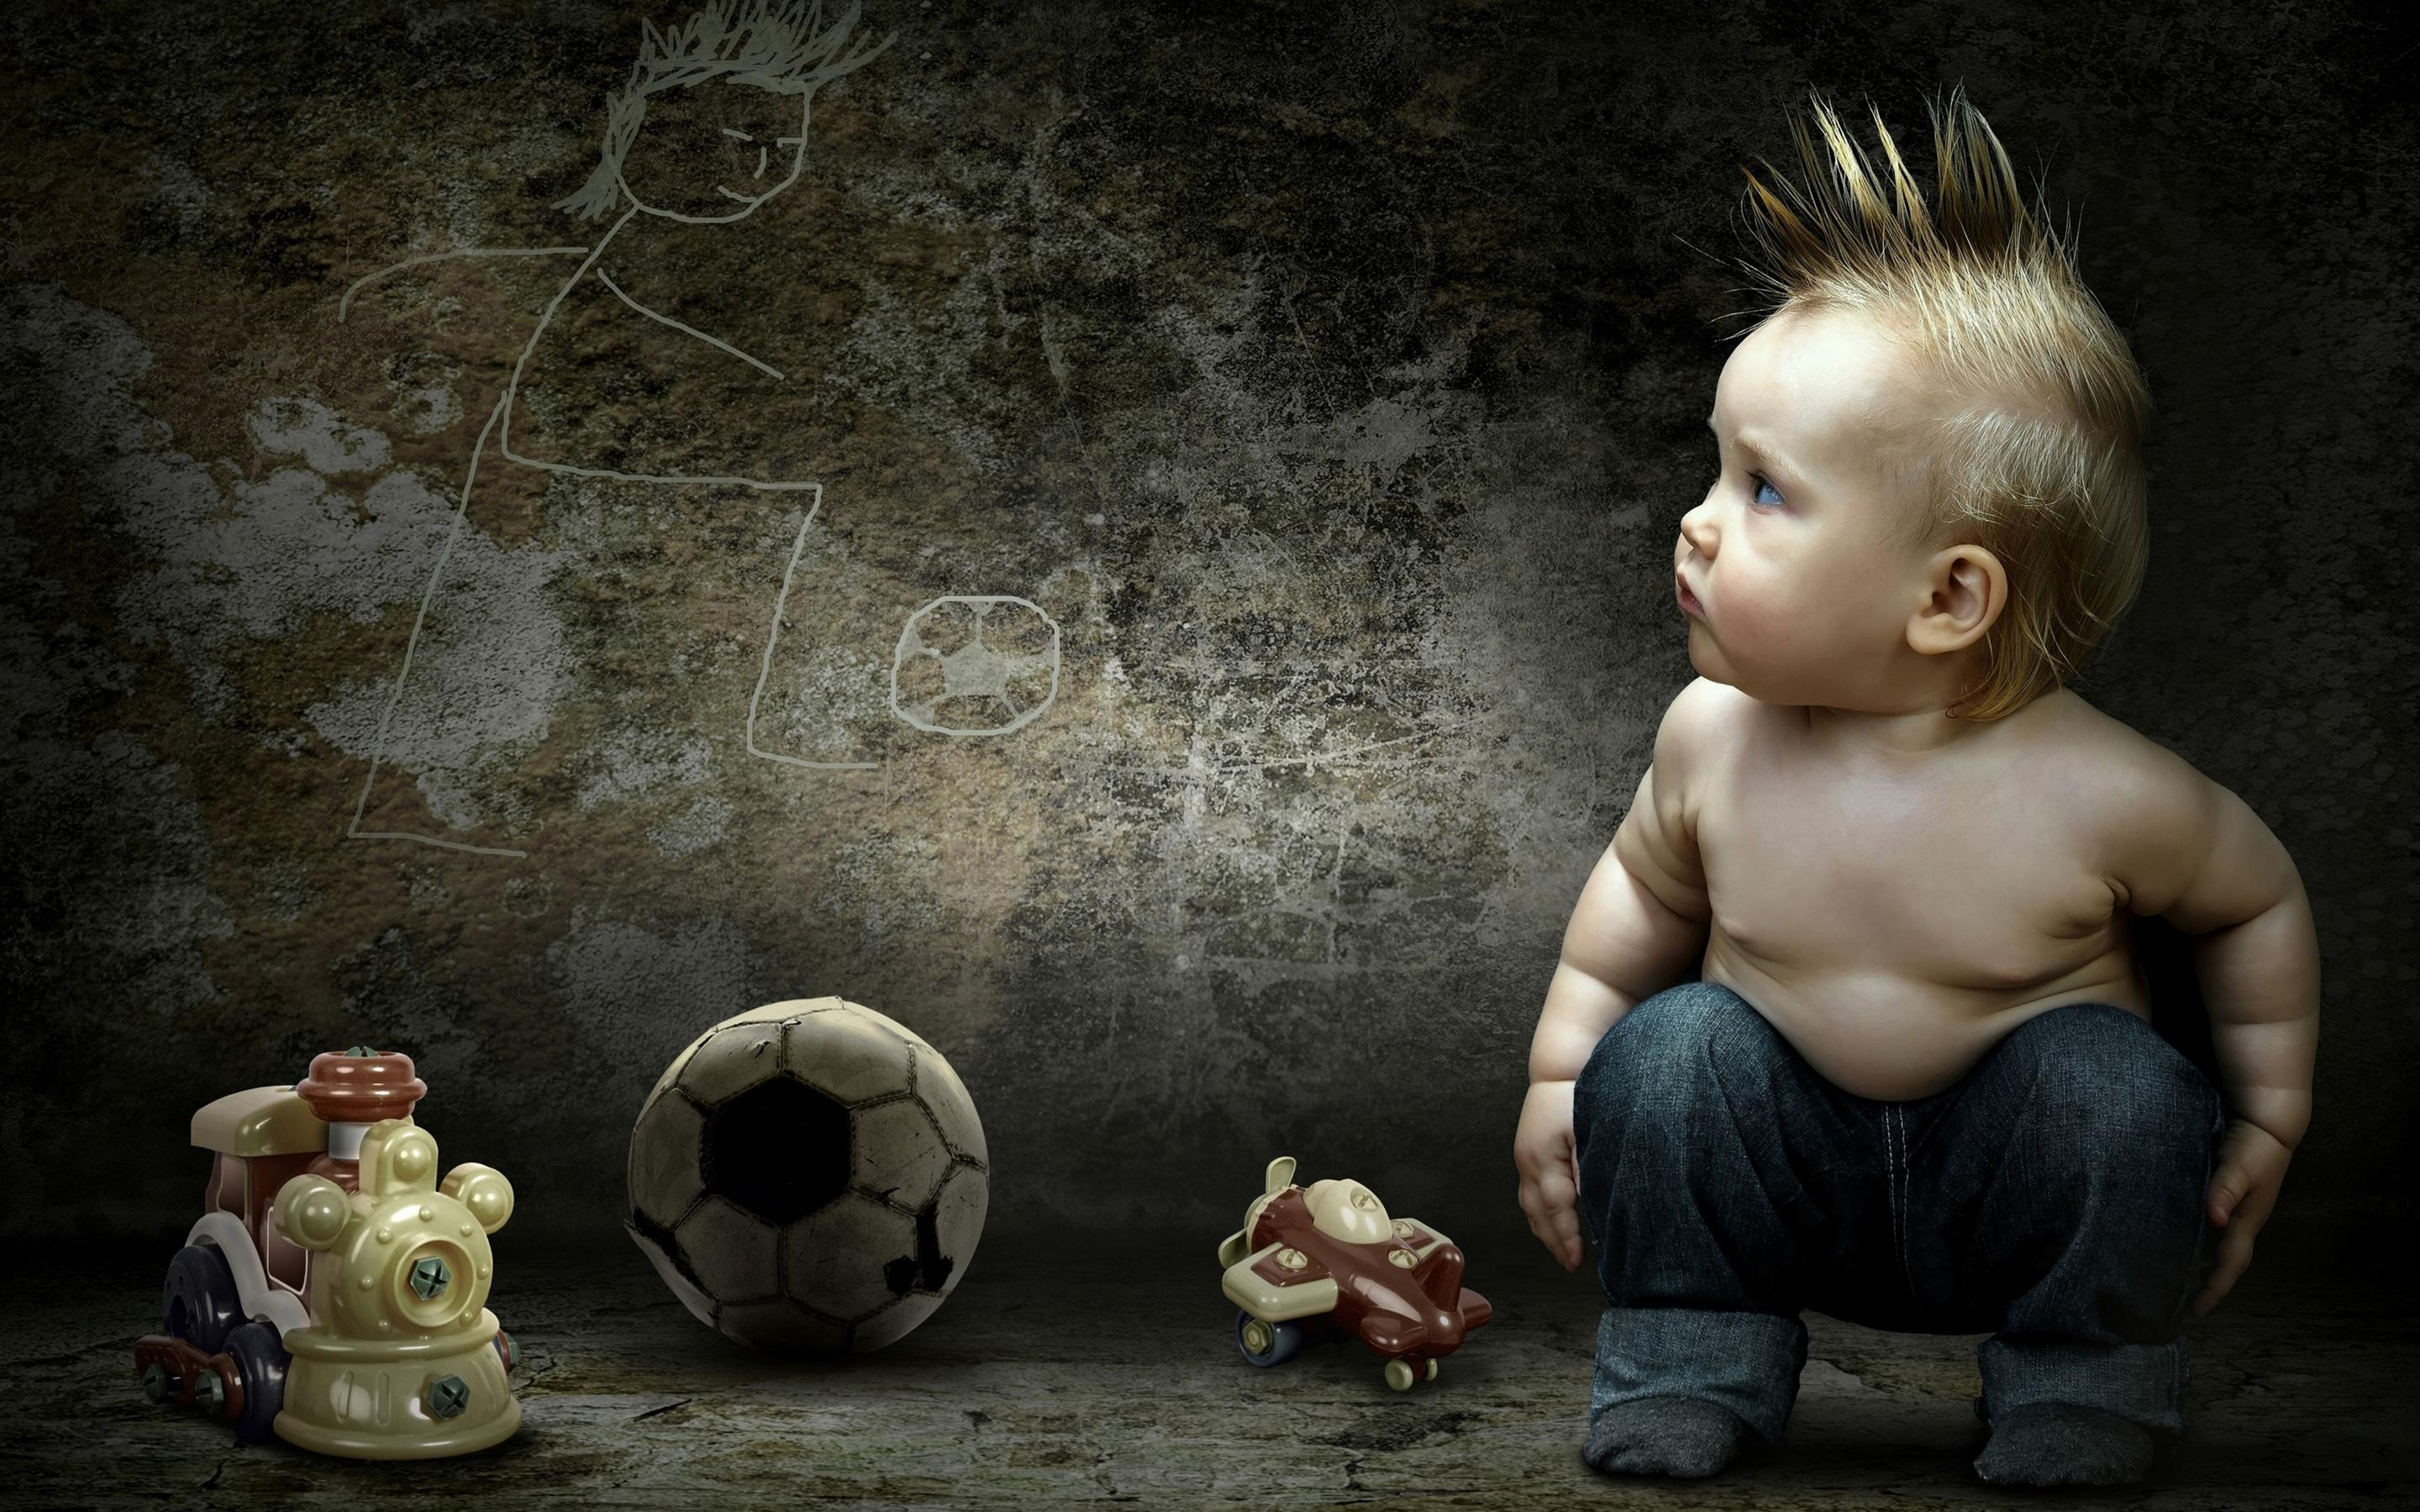 a sweet baby boy with crest loves football wallpaper download 2880x1800